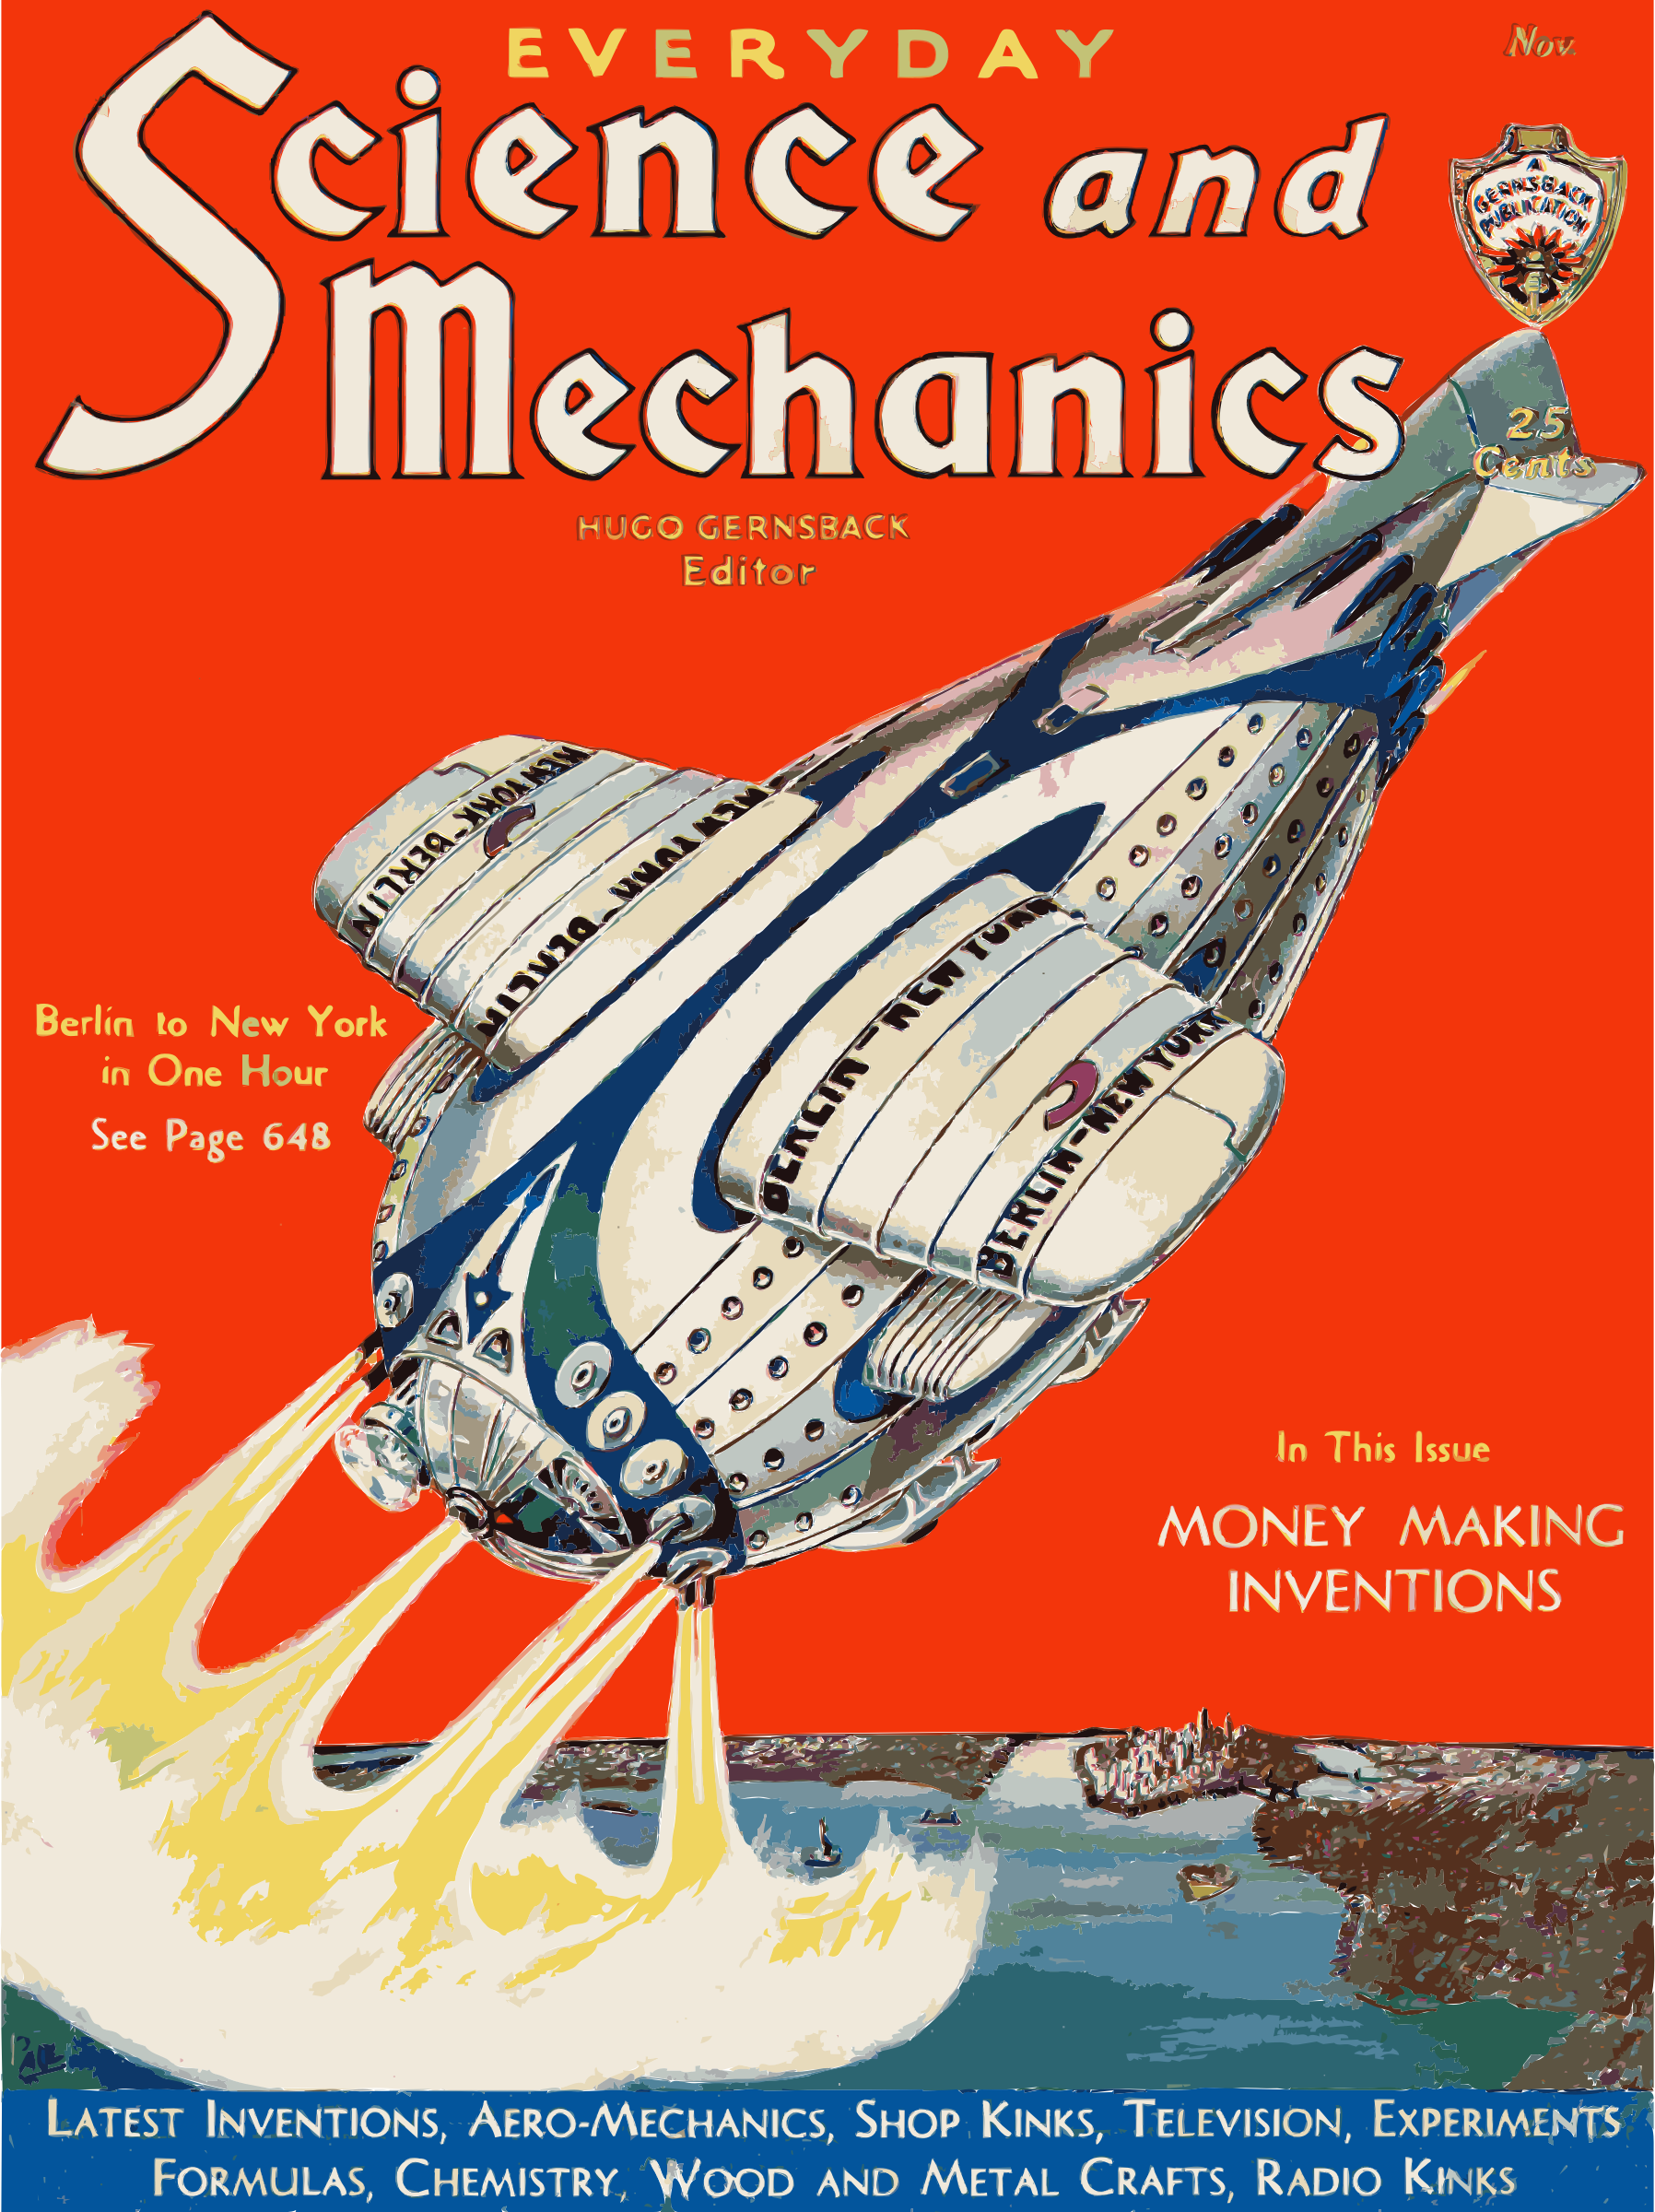 Science and Mechanics Nov 1931 cover by 5nbz3a+45jqtl07aorc